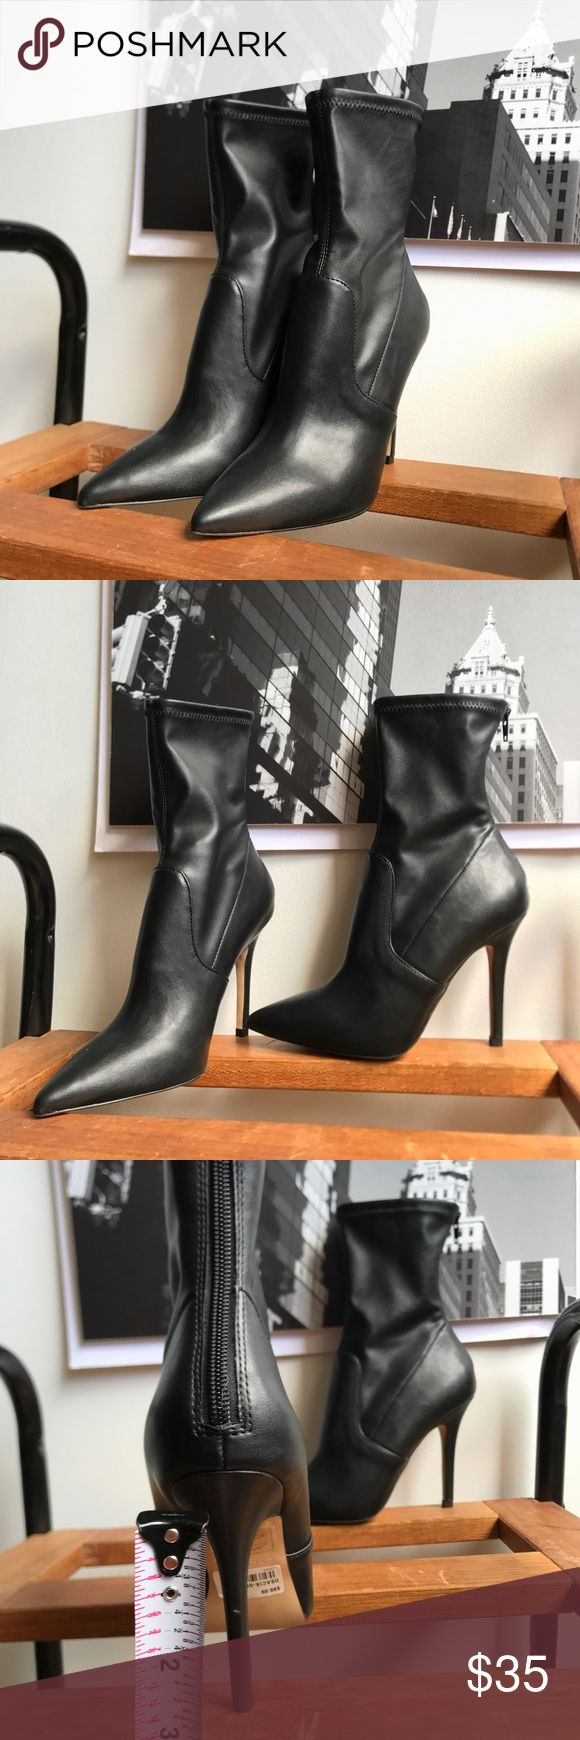 🙌🏾Brand New Aldo Ankle Boots #0183NW Brand new Aldo faux leather ankle booties with stretch material around the ankle area & lower leg area for a closer fit. #women #booties #anklebooties #boots #Aldo #size6 Aldo Shoes Ankle Boots & Booties